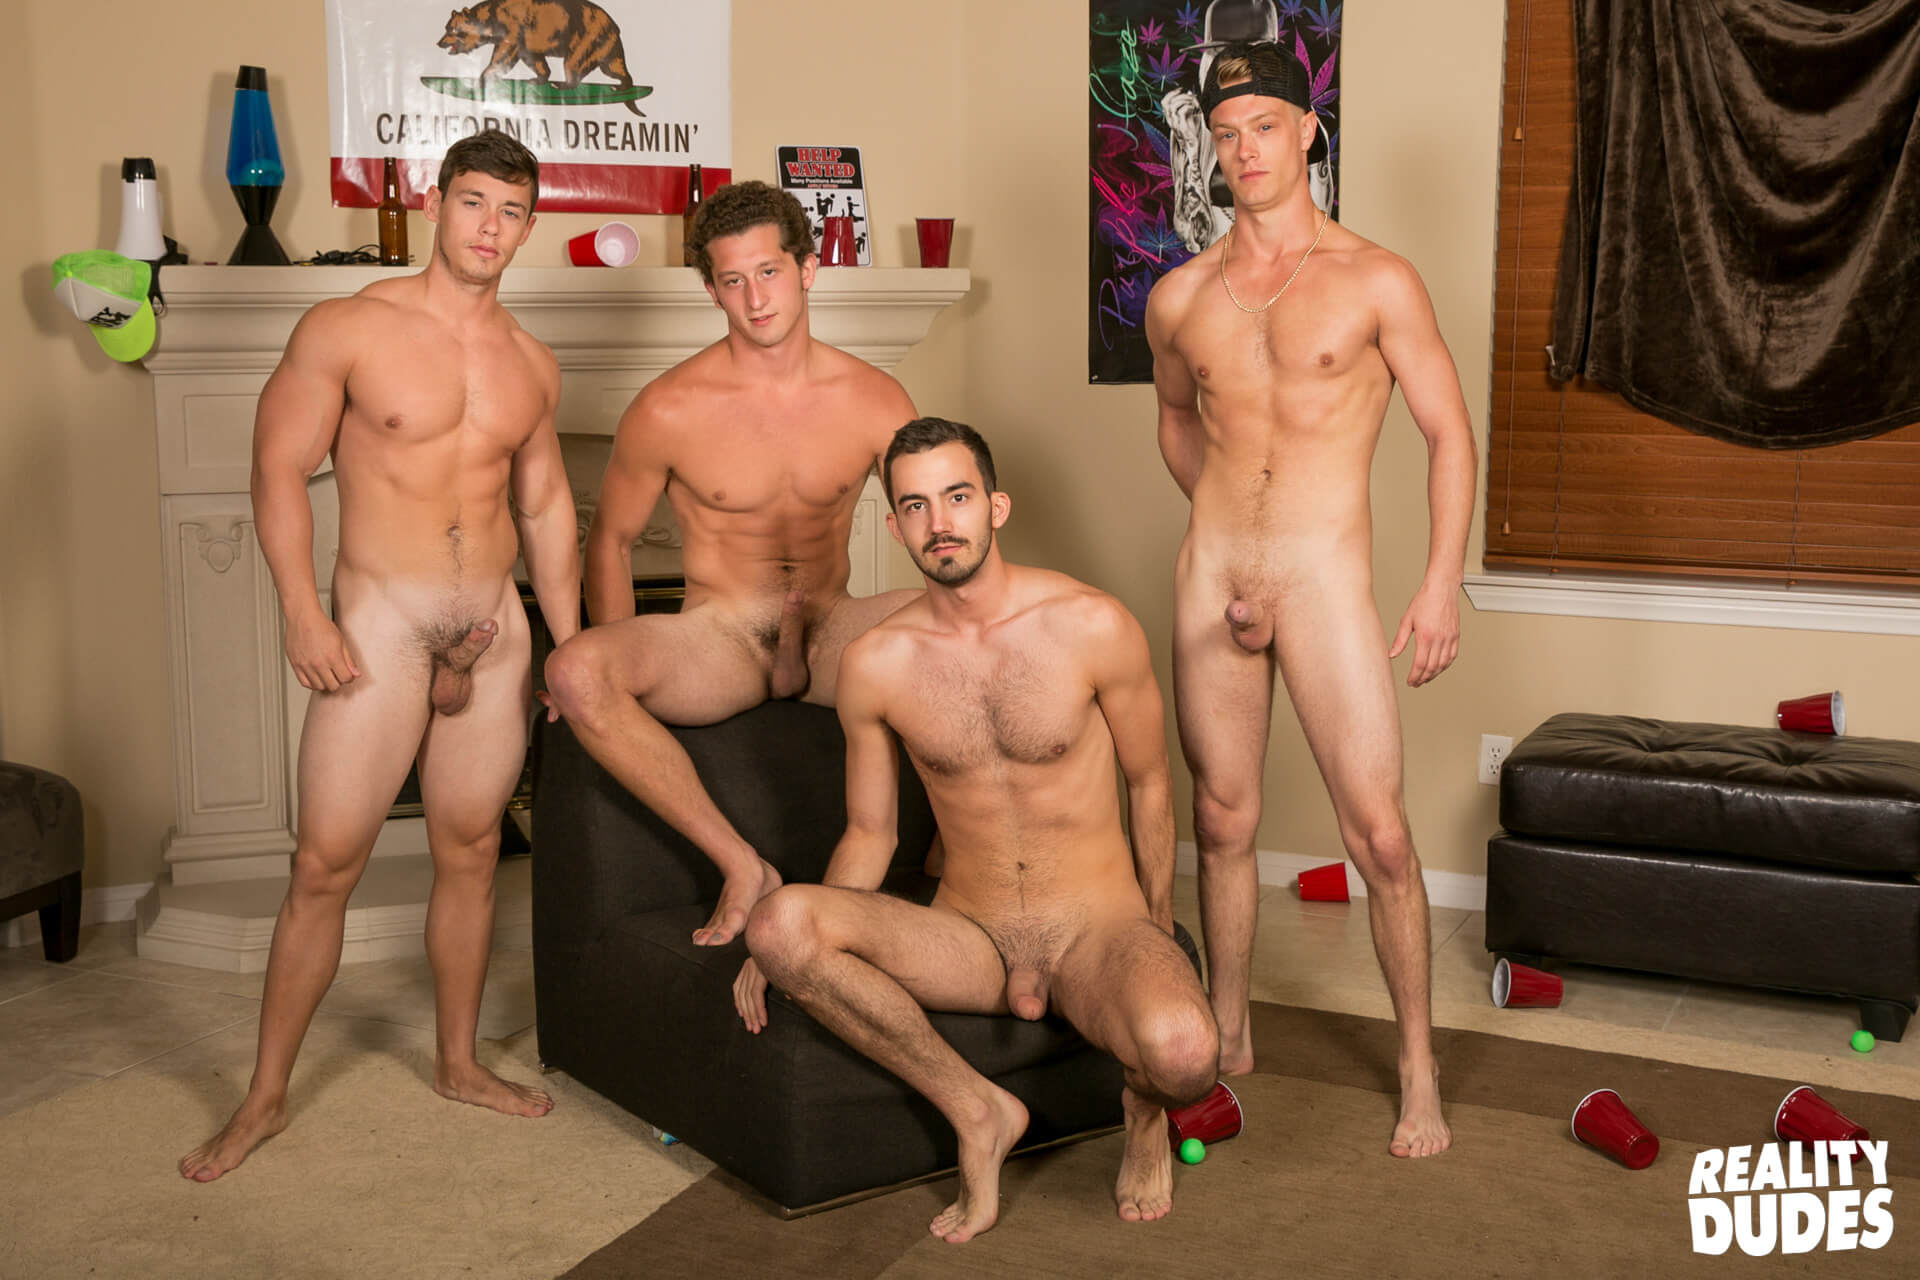 reality dudes dick dorm banana split gay porn blog image 21